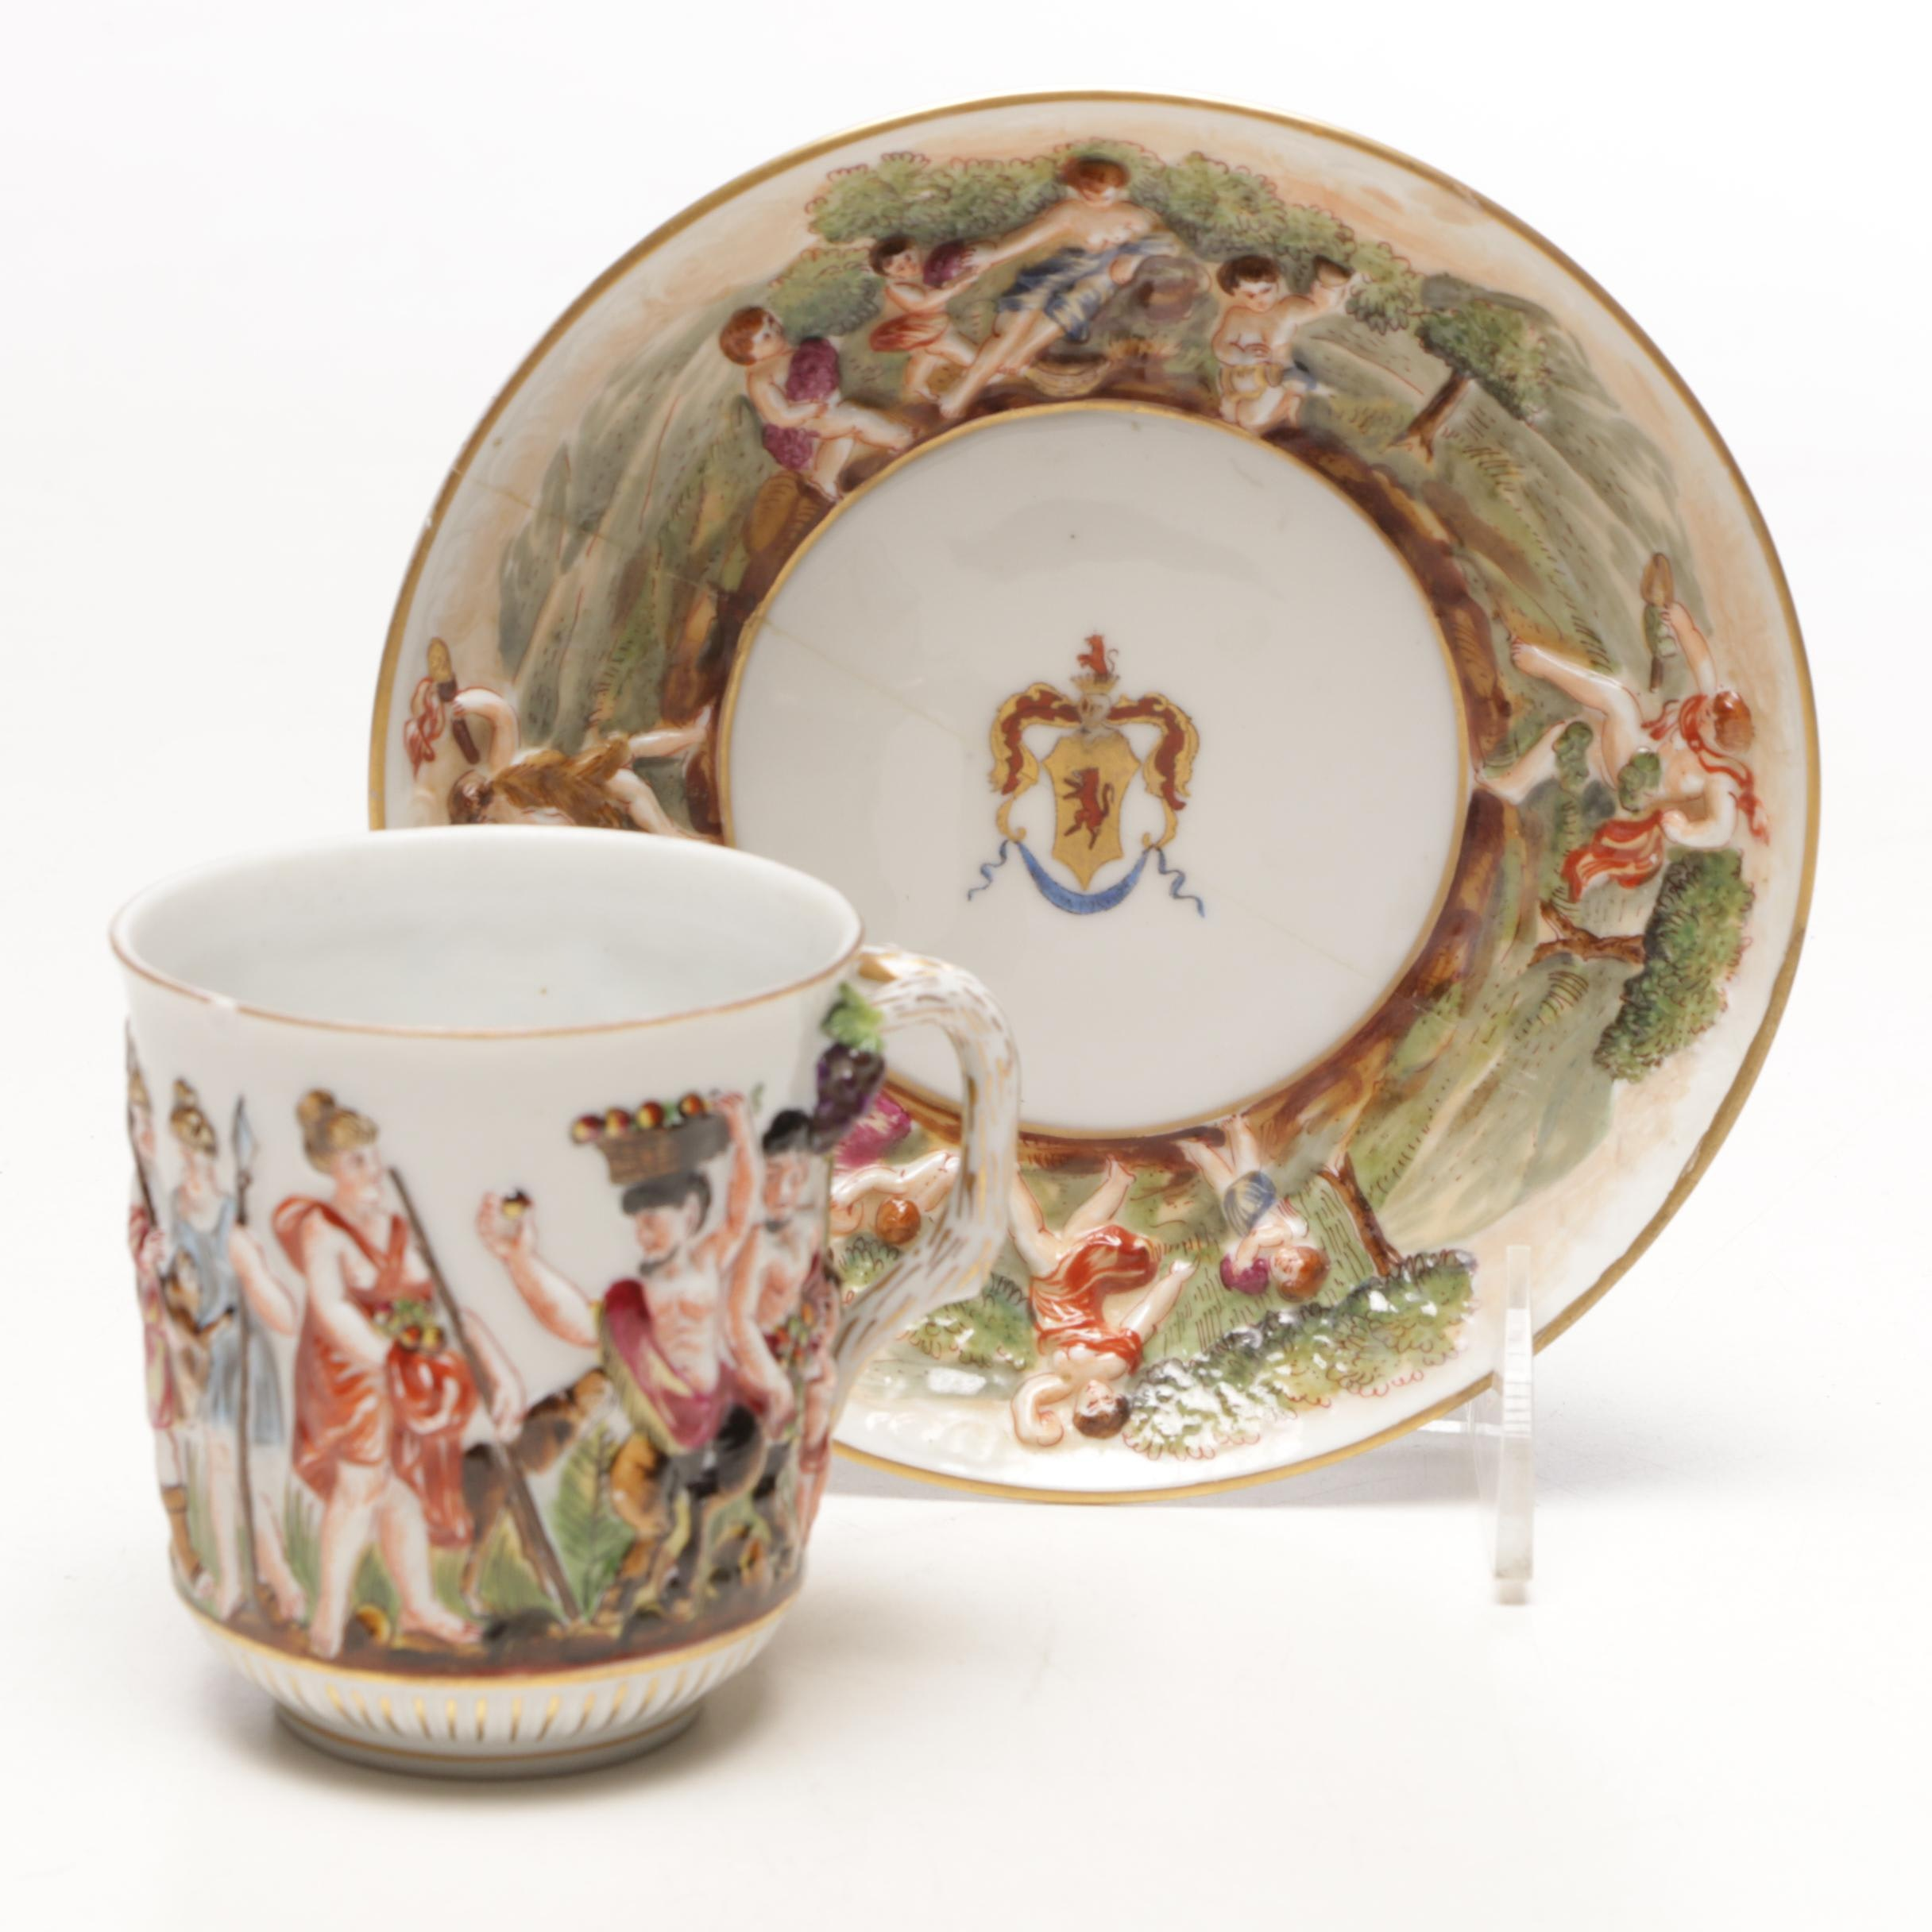 Antique Capodimonte Teacup and Saucer with Hand Painted Bas-Relief Designs